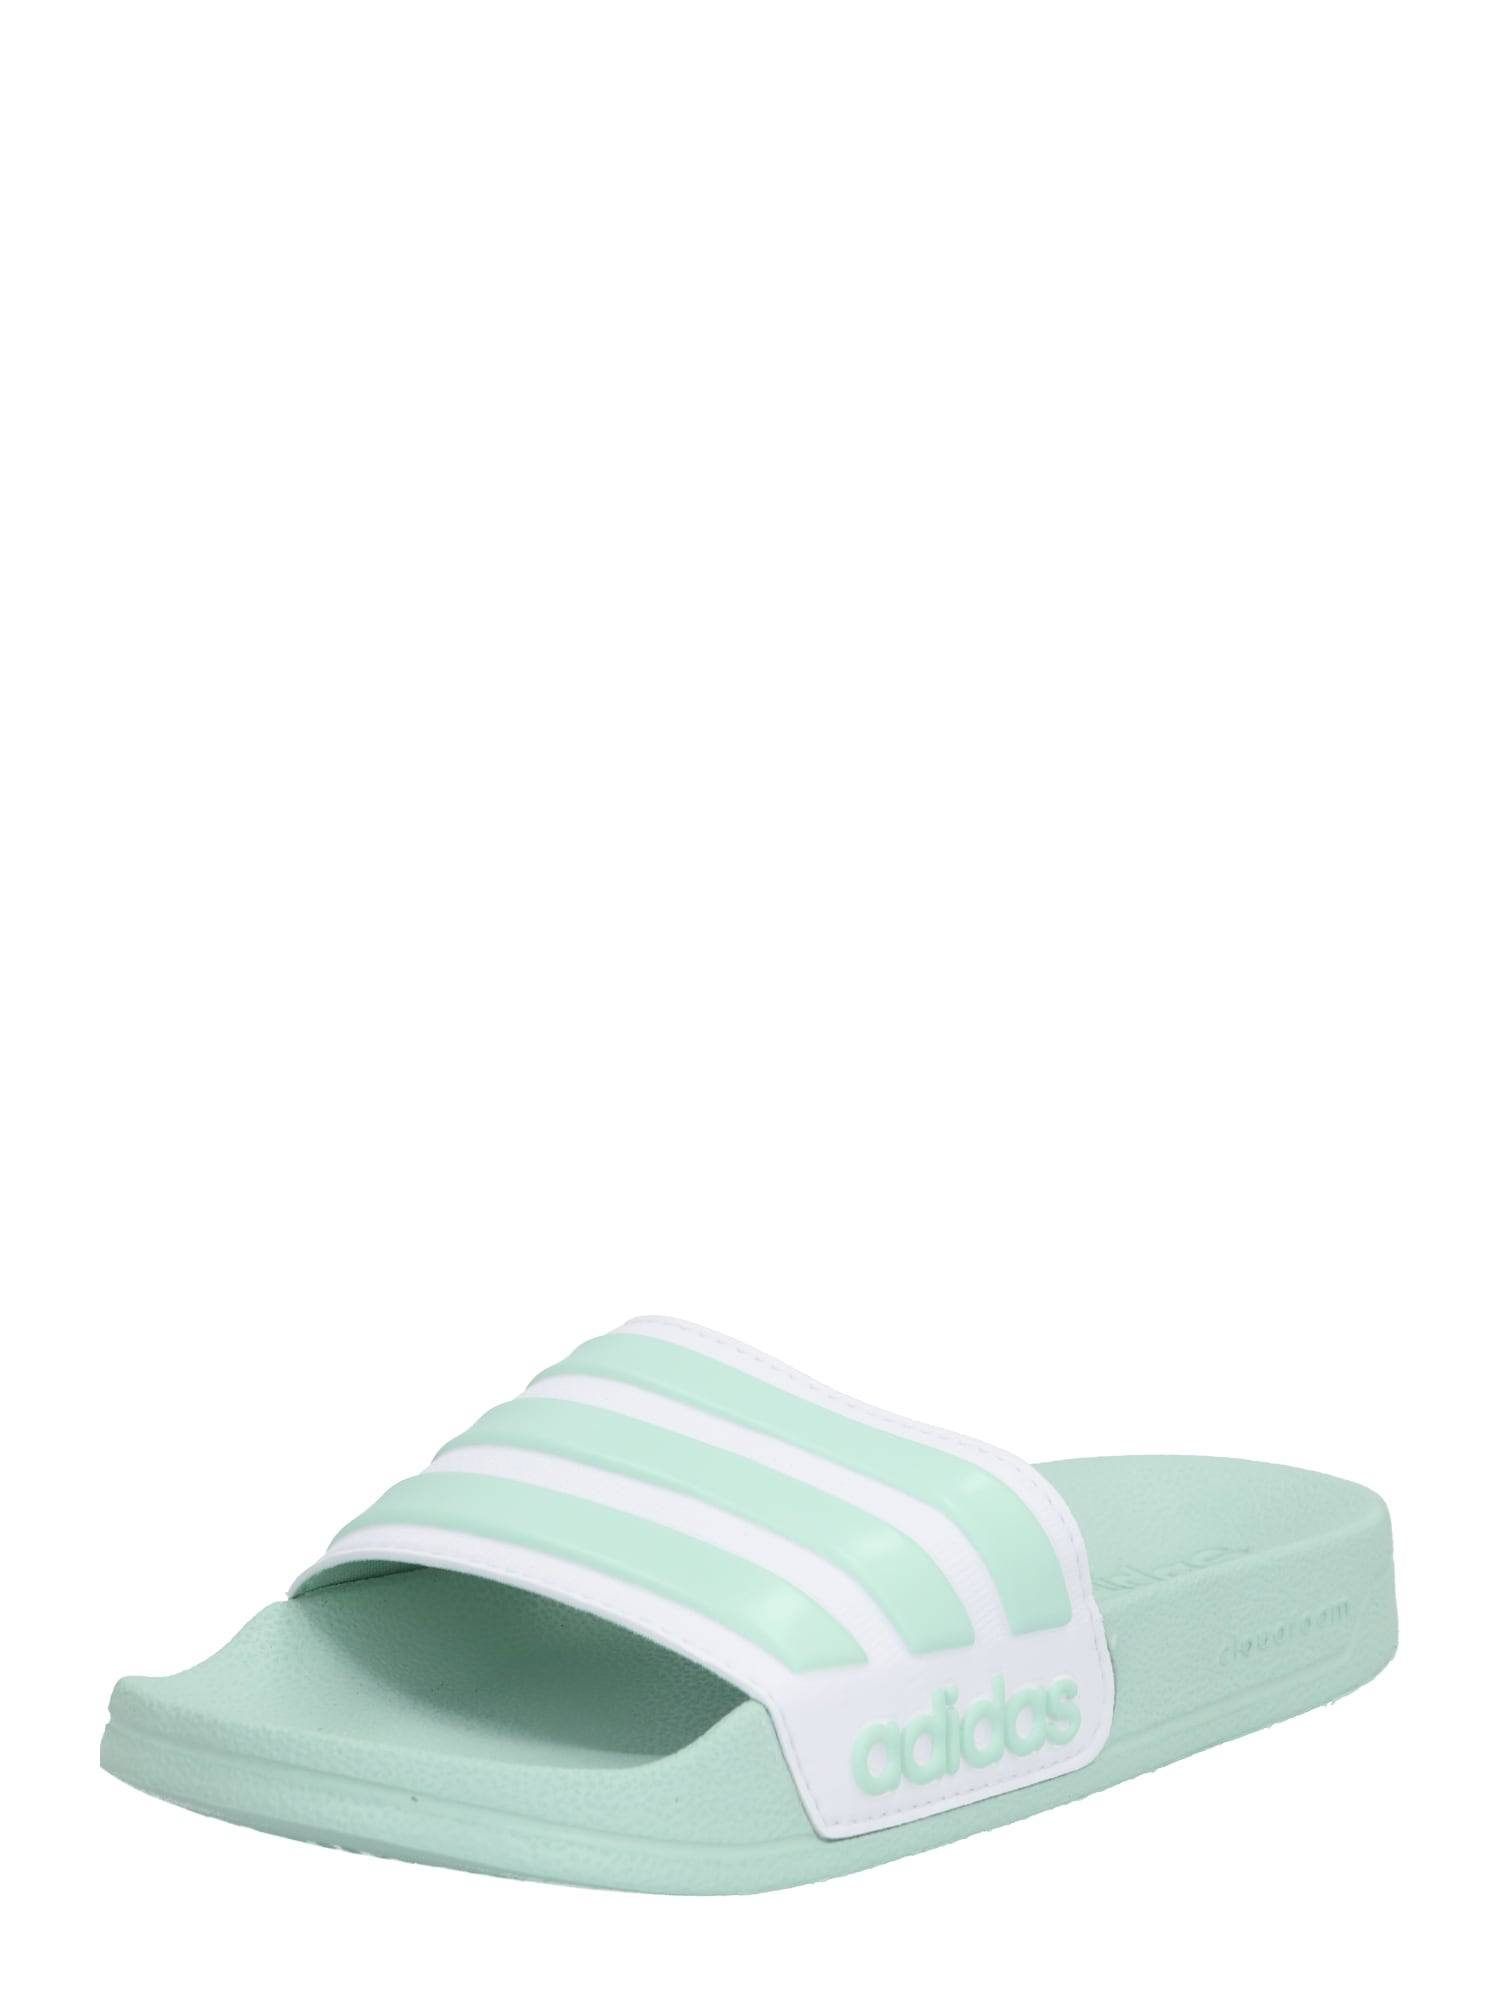 ADIDAS PERFORMANCE Claquettes / Tongs 'Adilette'  - Vert - Taille: 4 - female